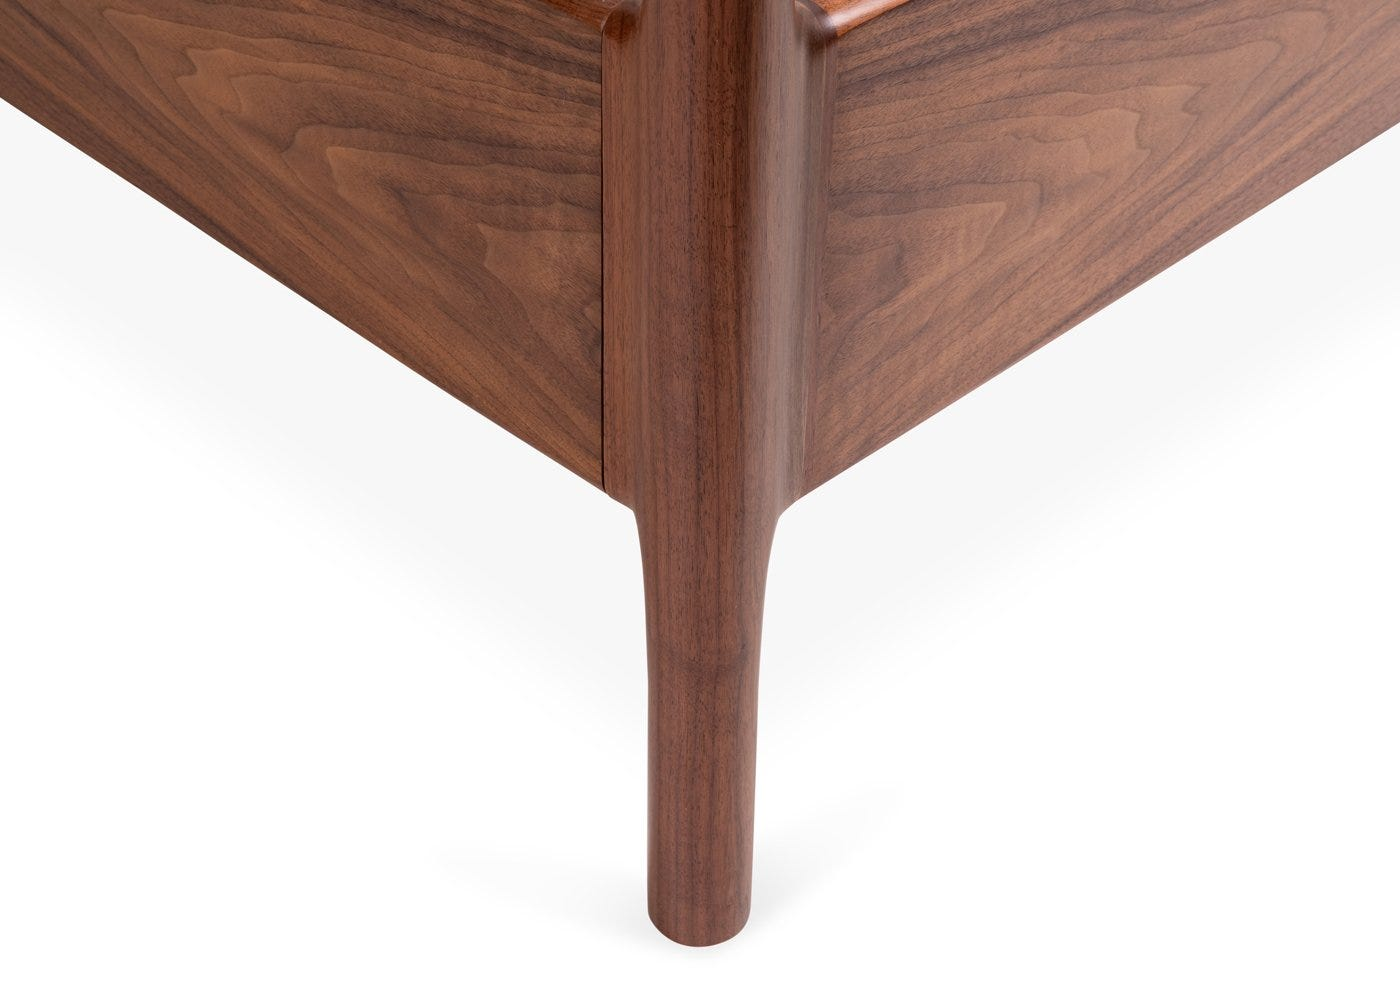 Marlow 4 Poster Bed Leg.